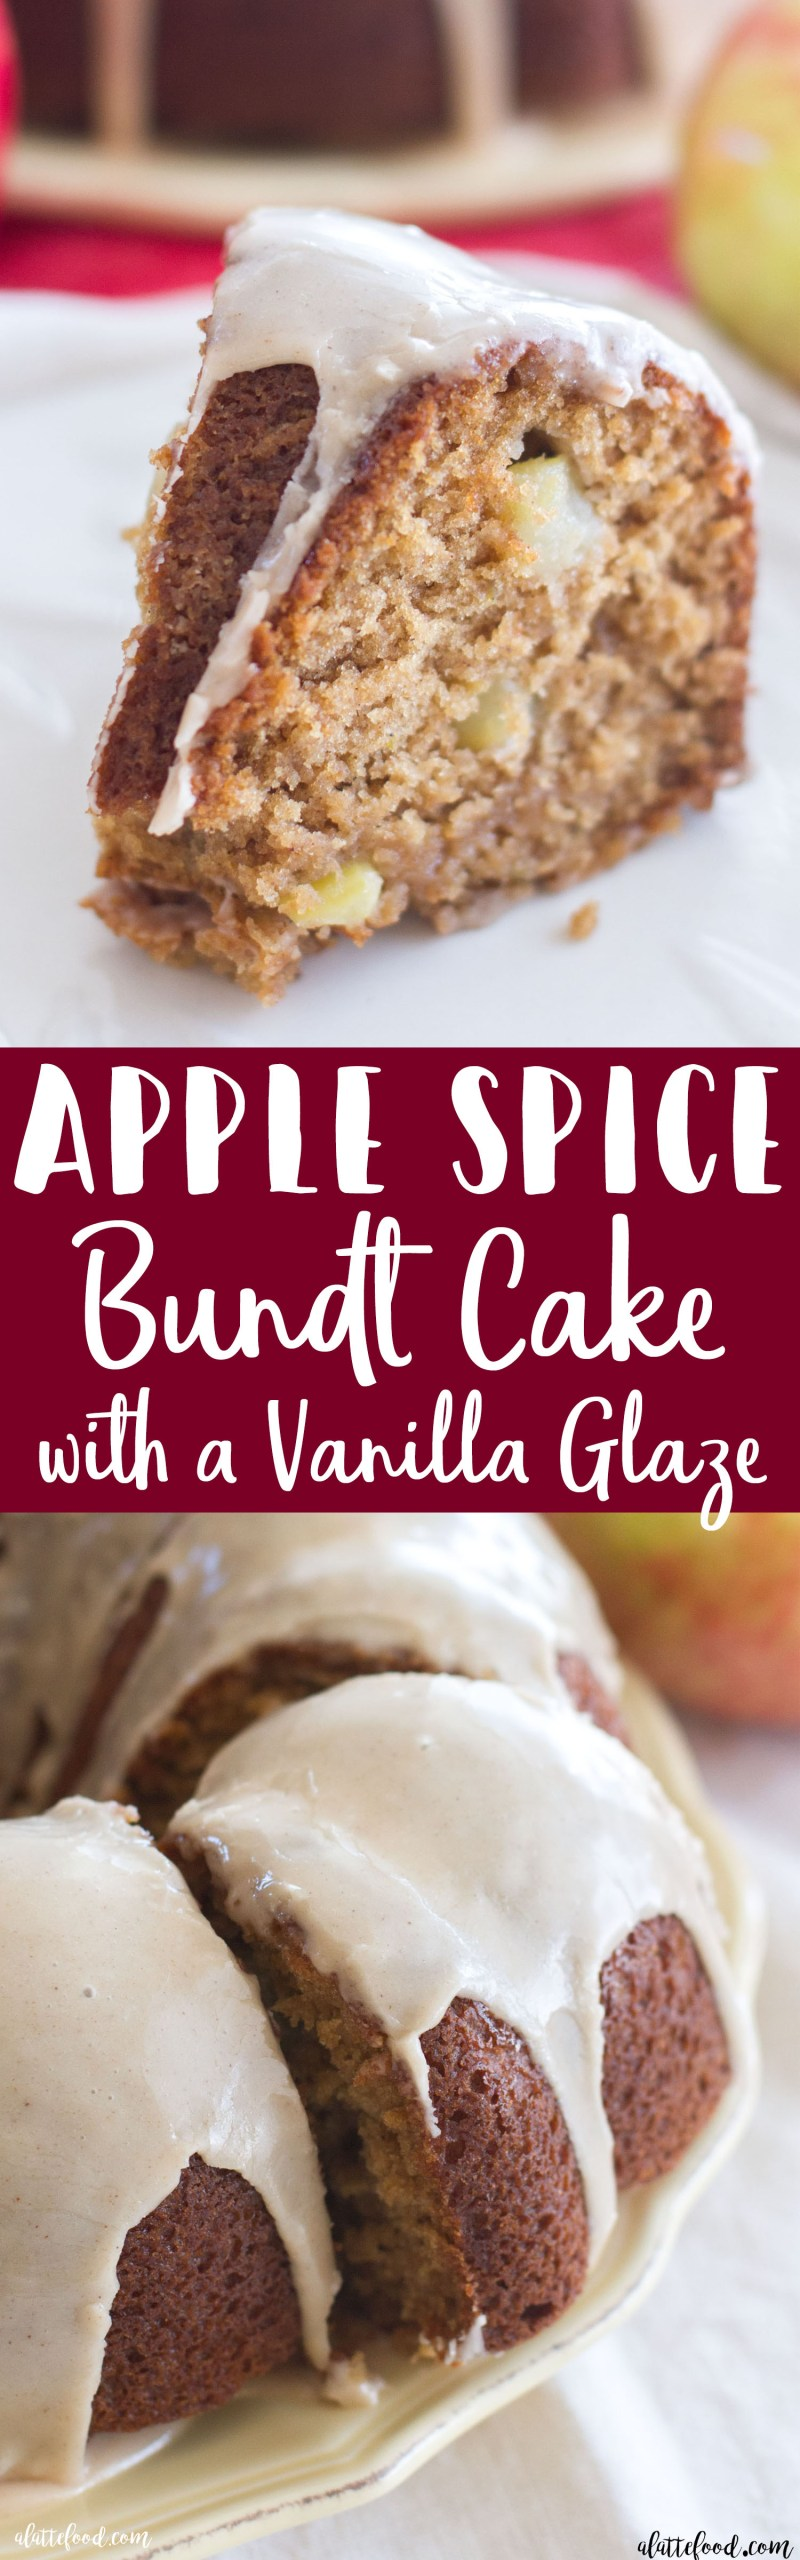 This easy apple spice bundt cake recipe is the perfect dessert! Filled with both shredded and chopped apples, this cake is full of sweet apple flavor! The vanilla glaze is the cherry-on-top, making this easy apple cake a family favorite! apple spice cake, apple bundt cake, fall dessert